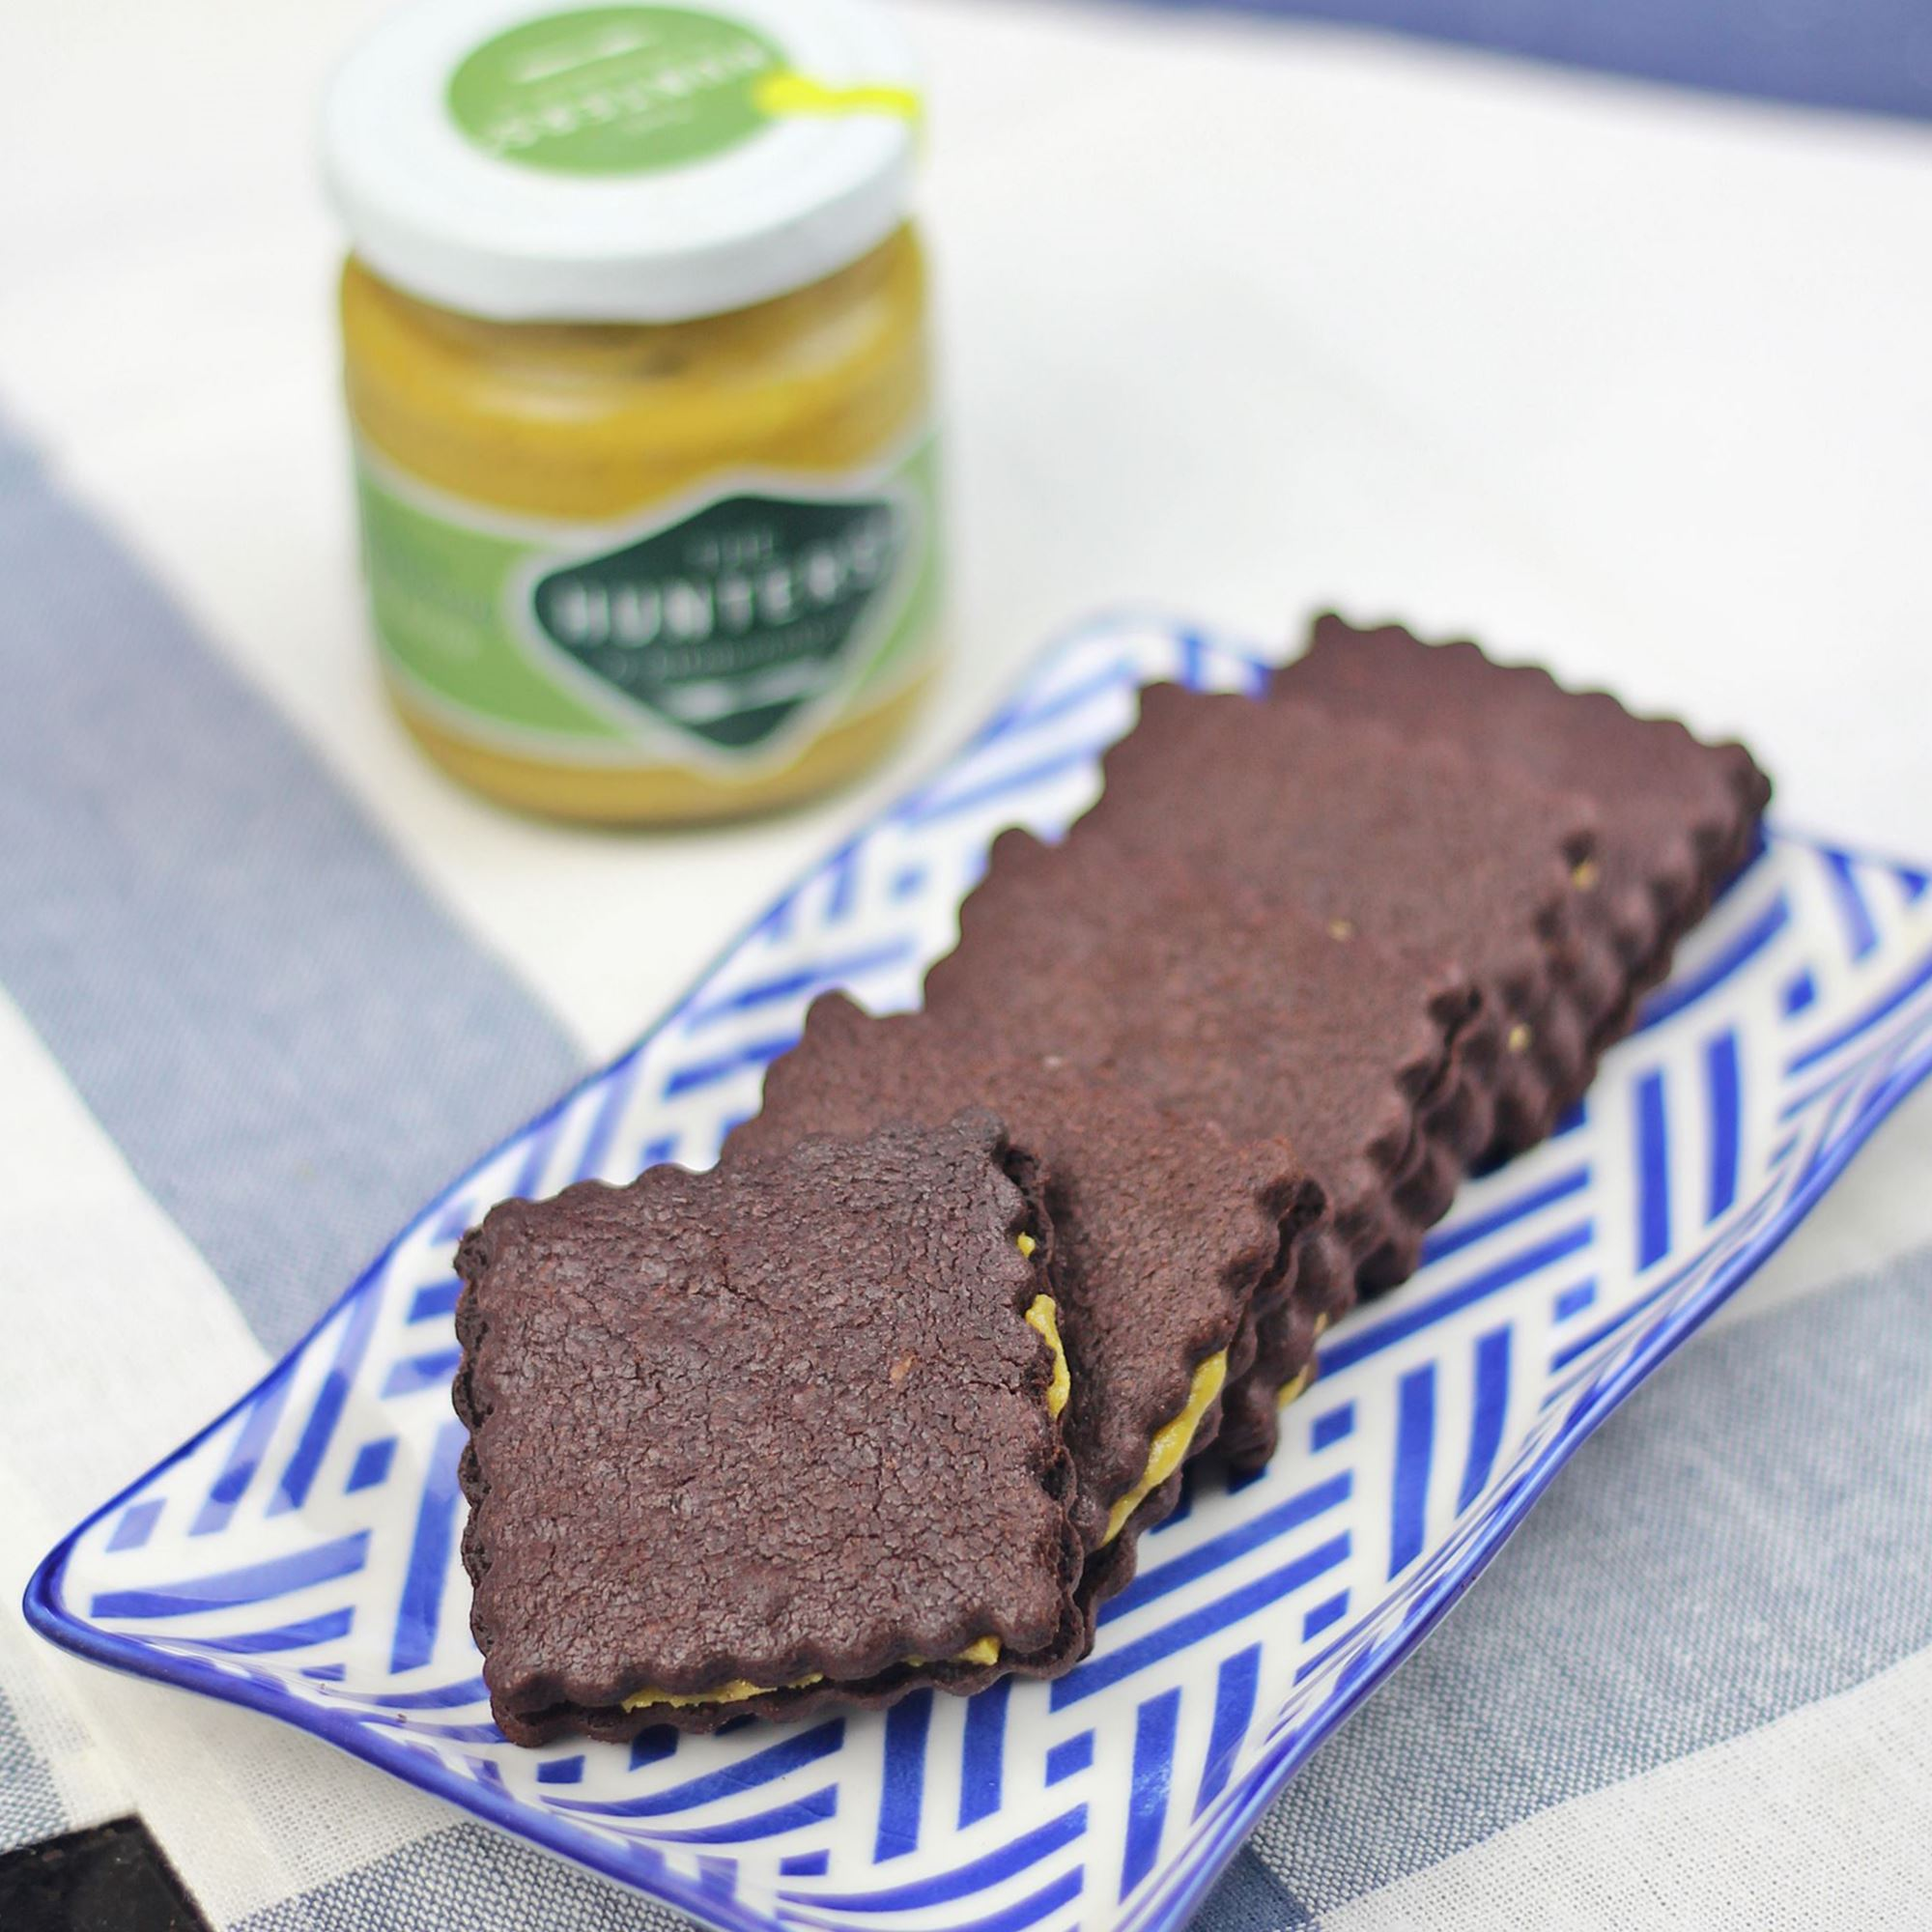 Chocolate Sandwich Biscuits with Pistachio cream